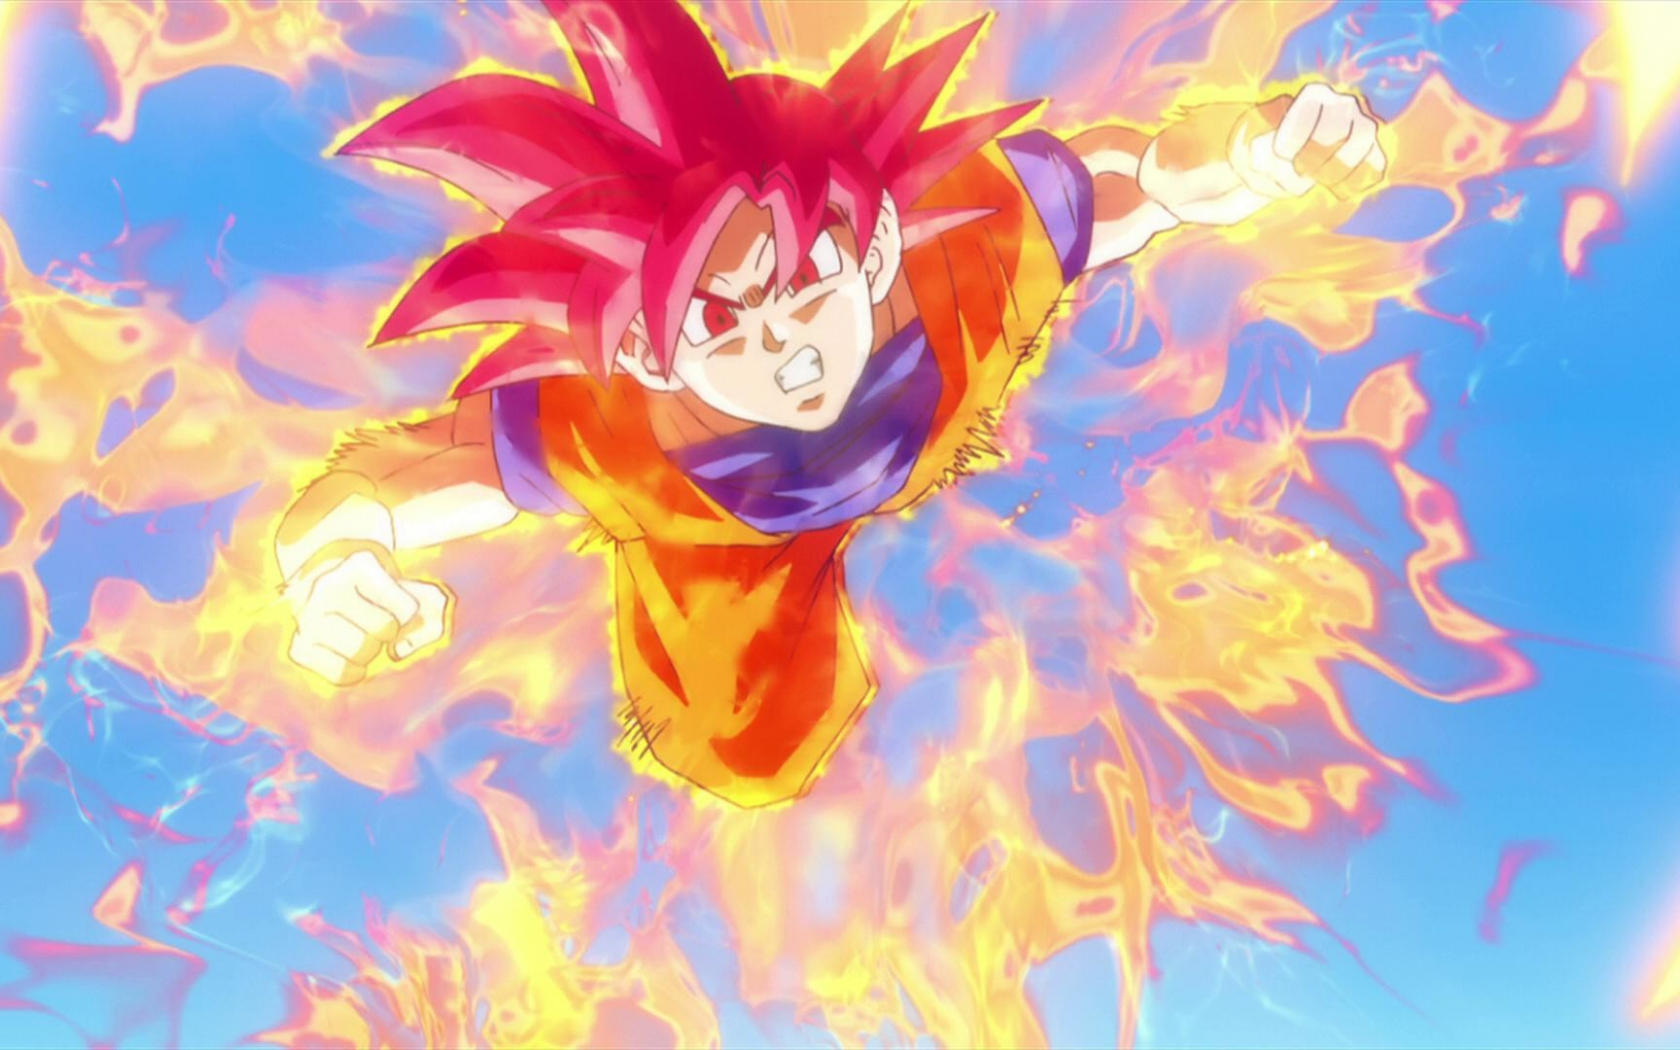 Free Download Goku Ssj5 Wallpapers 48 Images 1920x1080 For